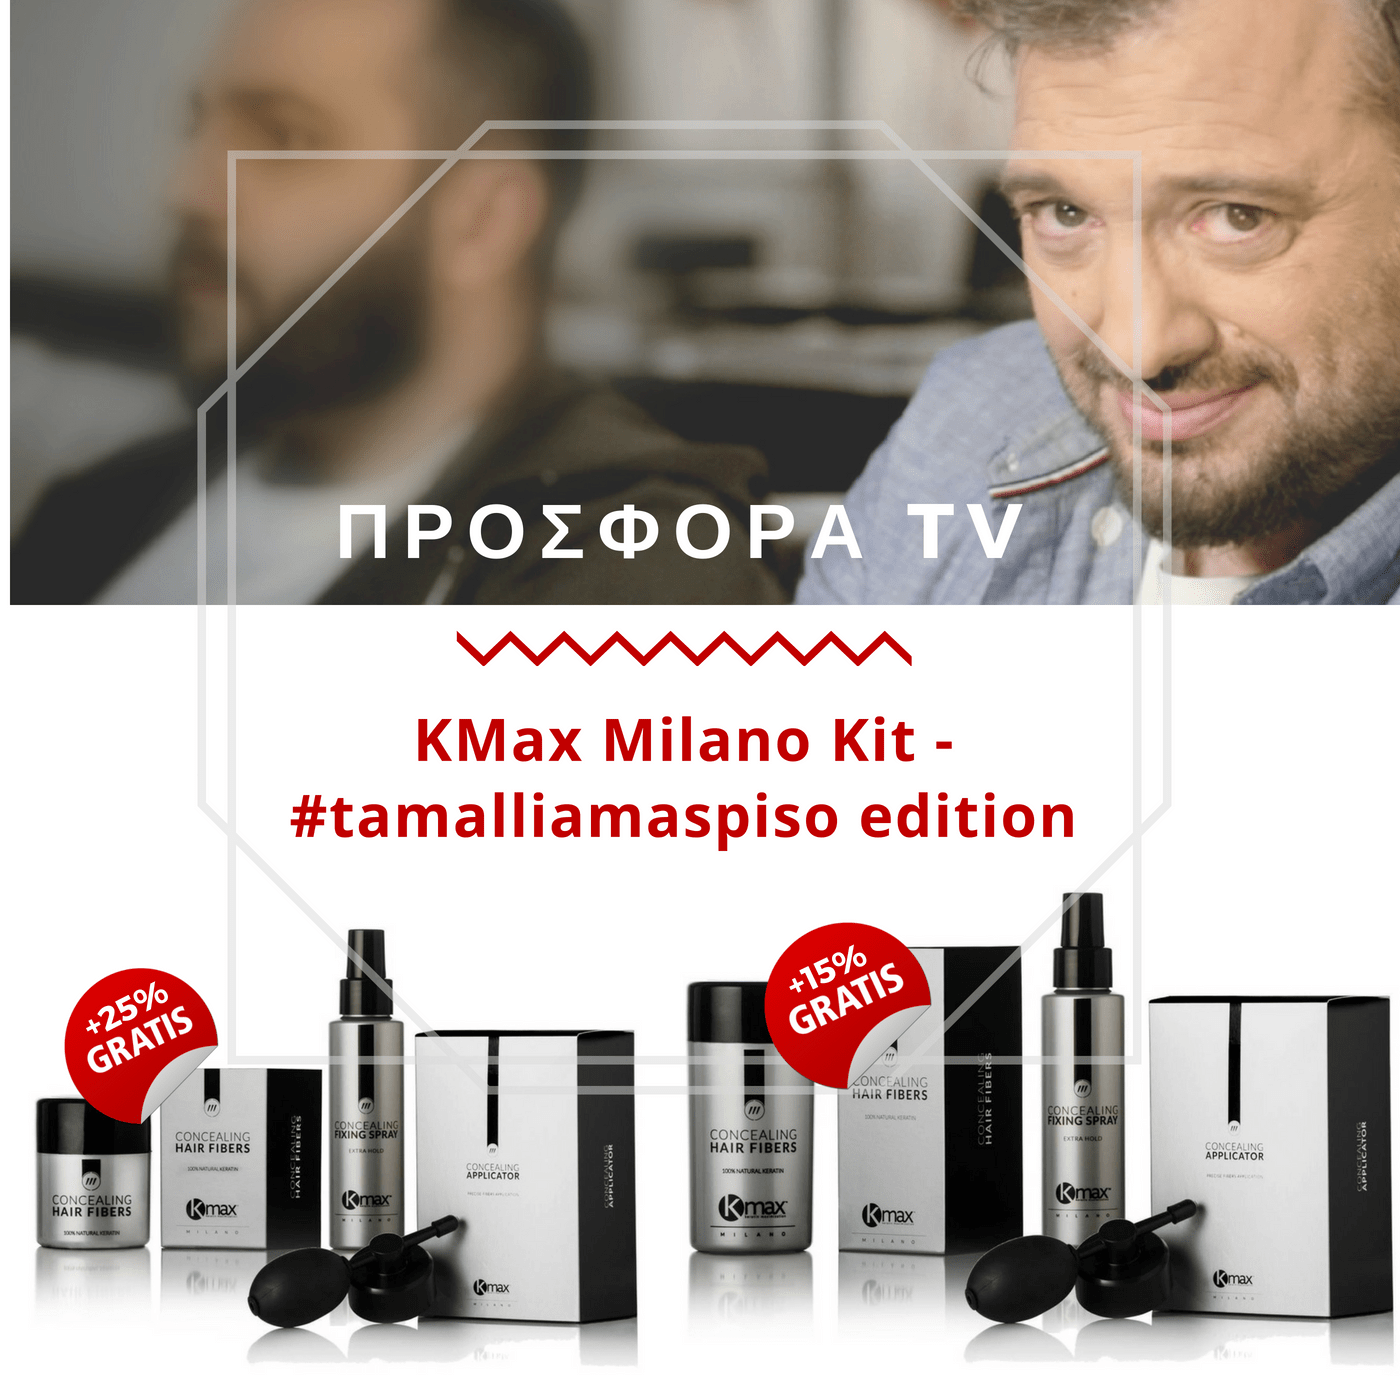 kmax tv offer